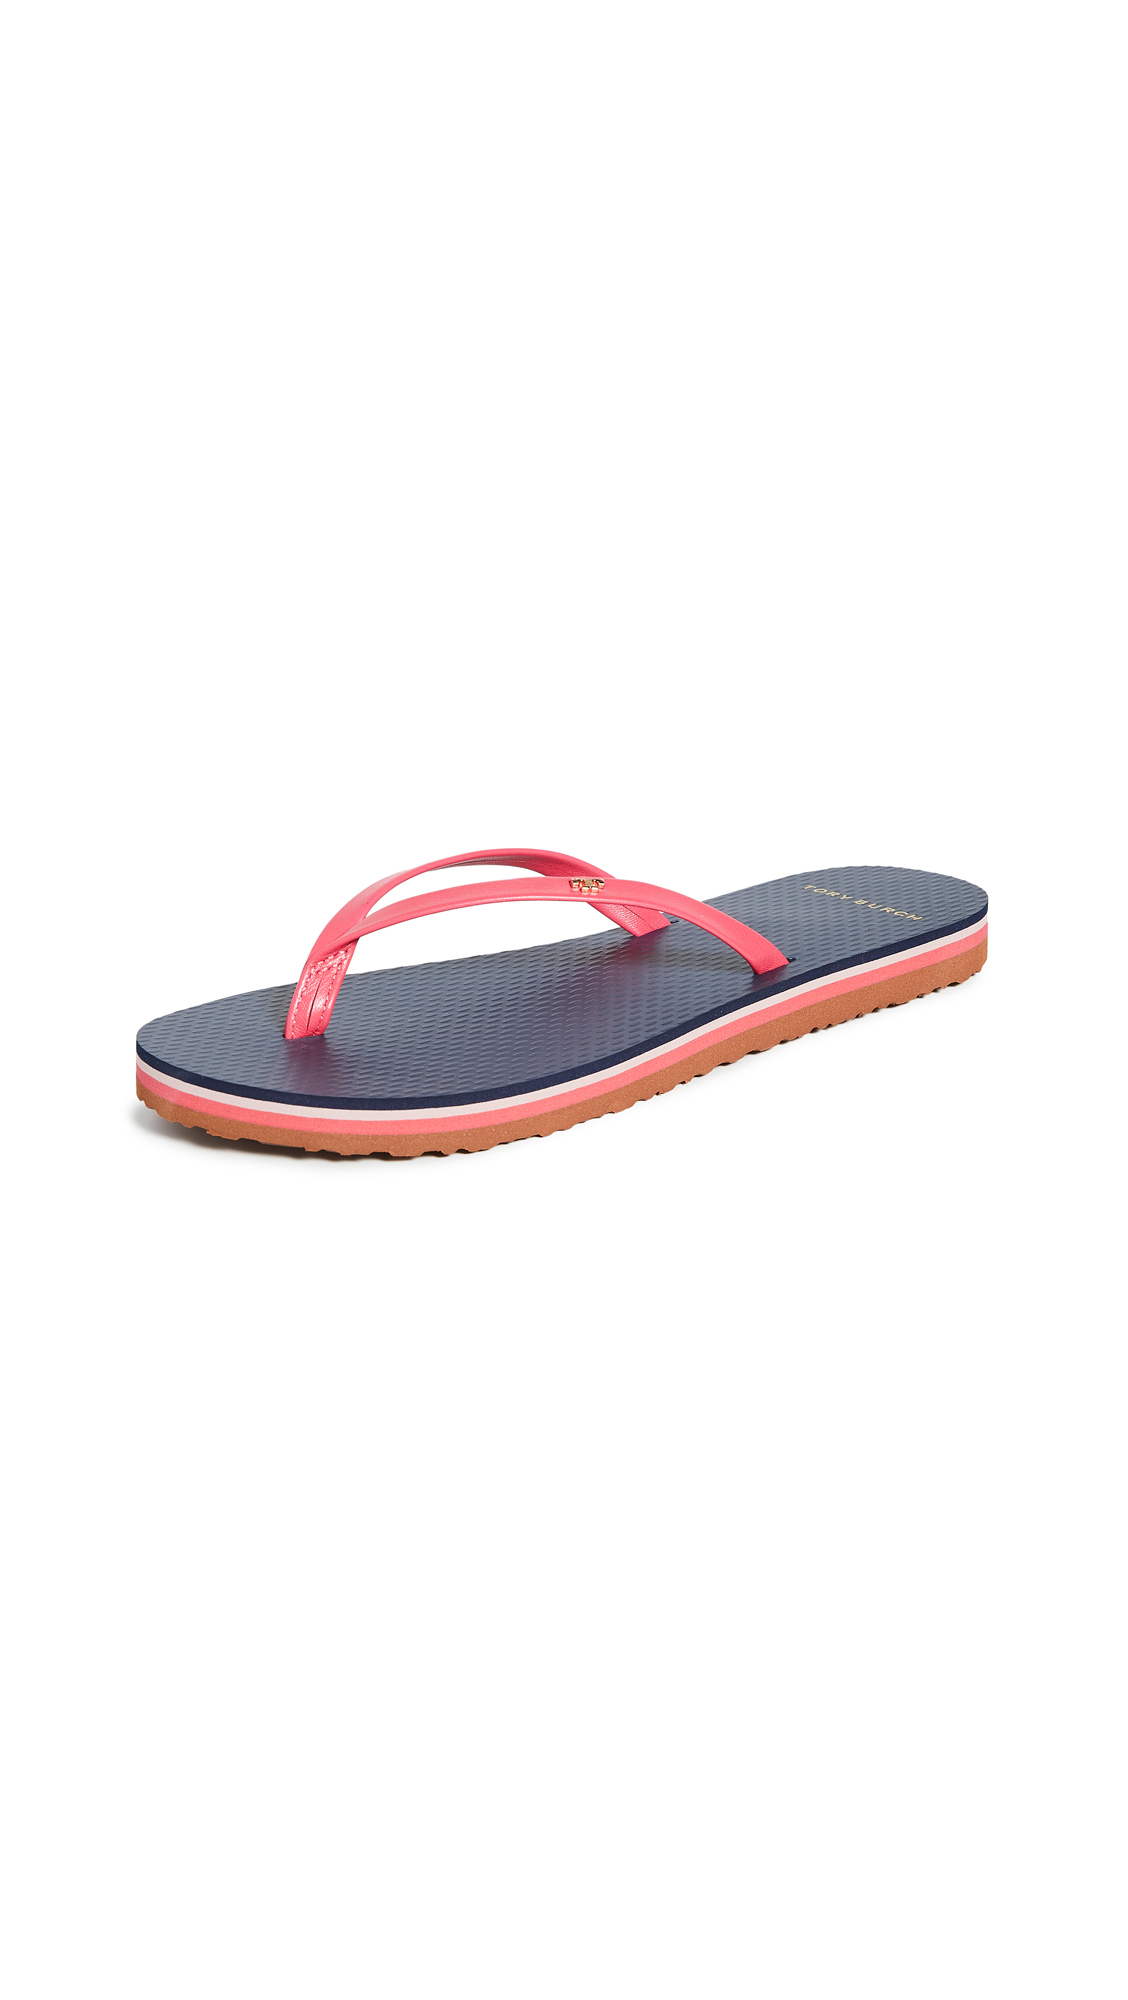 Tory Burch Leather Flip Flops – 30% Off Sale